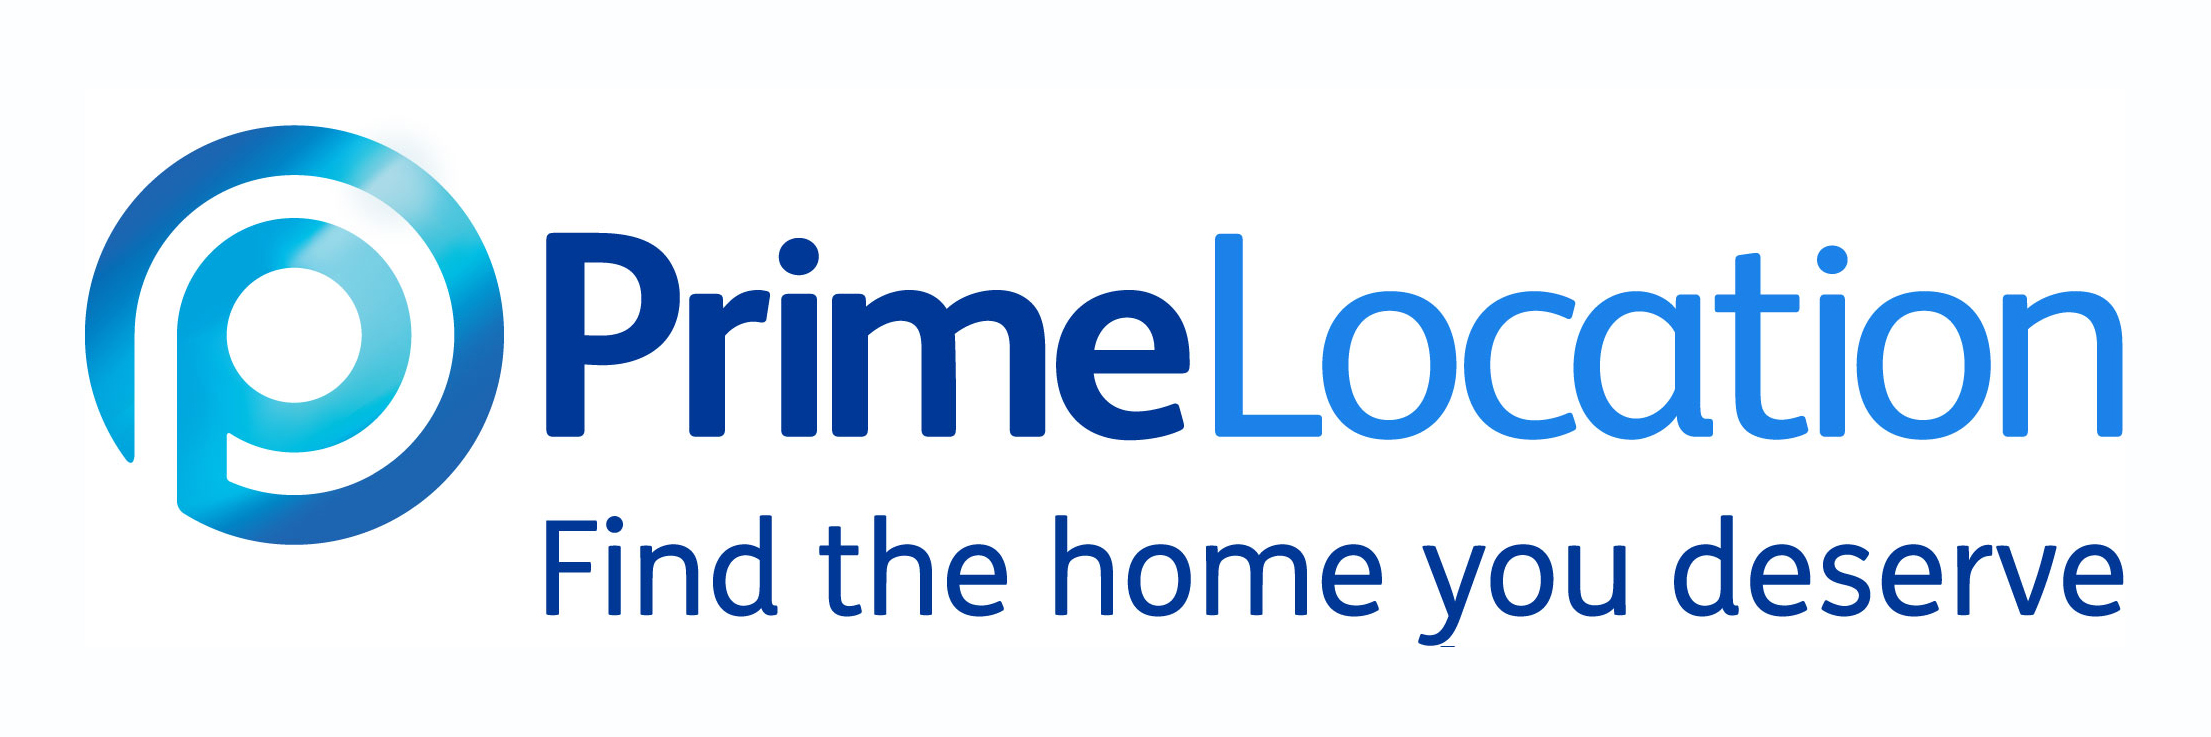 prime-location-logo